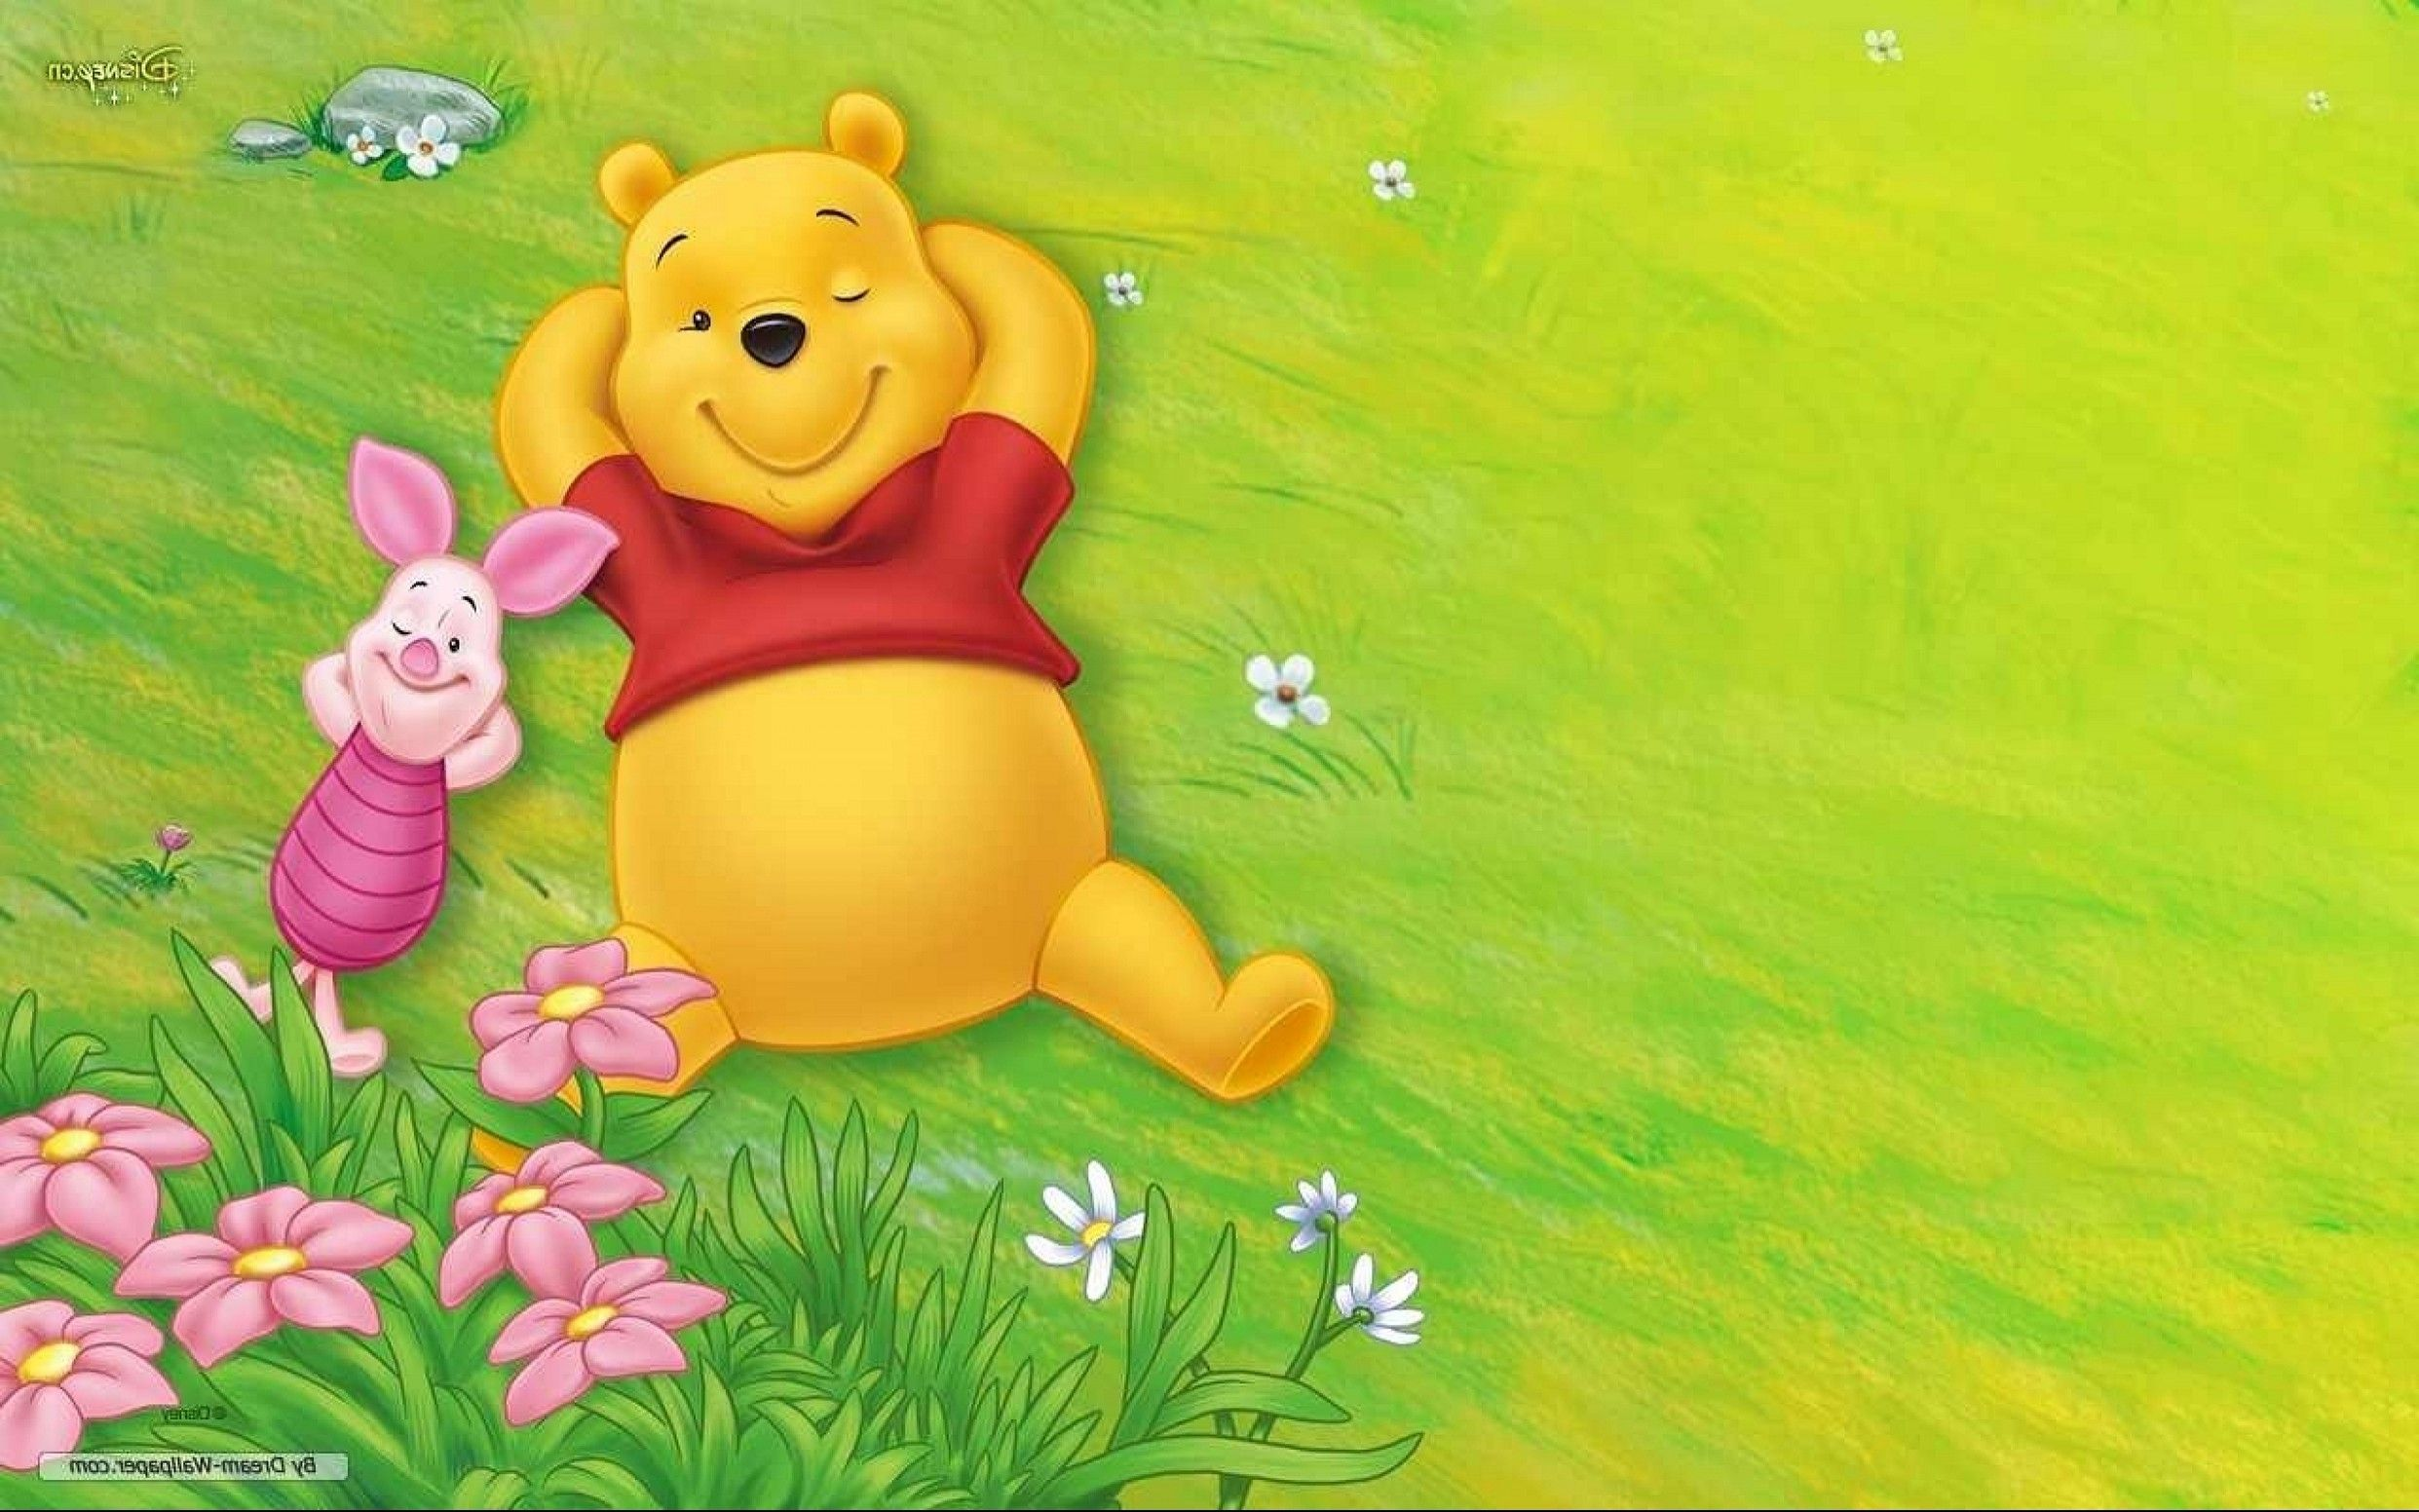 Winnie the pooh and friends wallpaper hd wallpapers winnie the pooh christmas winnie the - Winnie the pooh and friends wallpaper ...